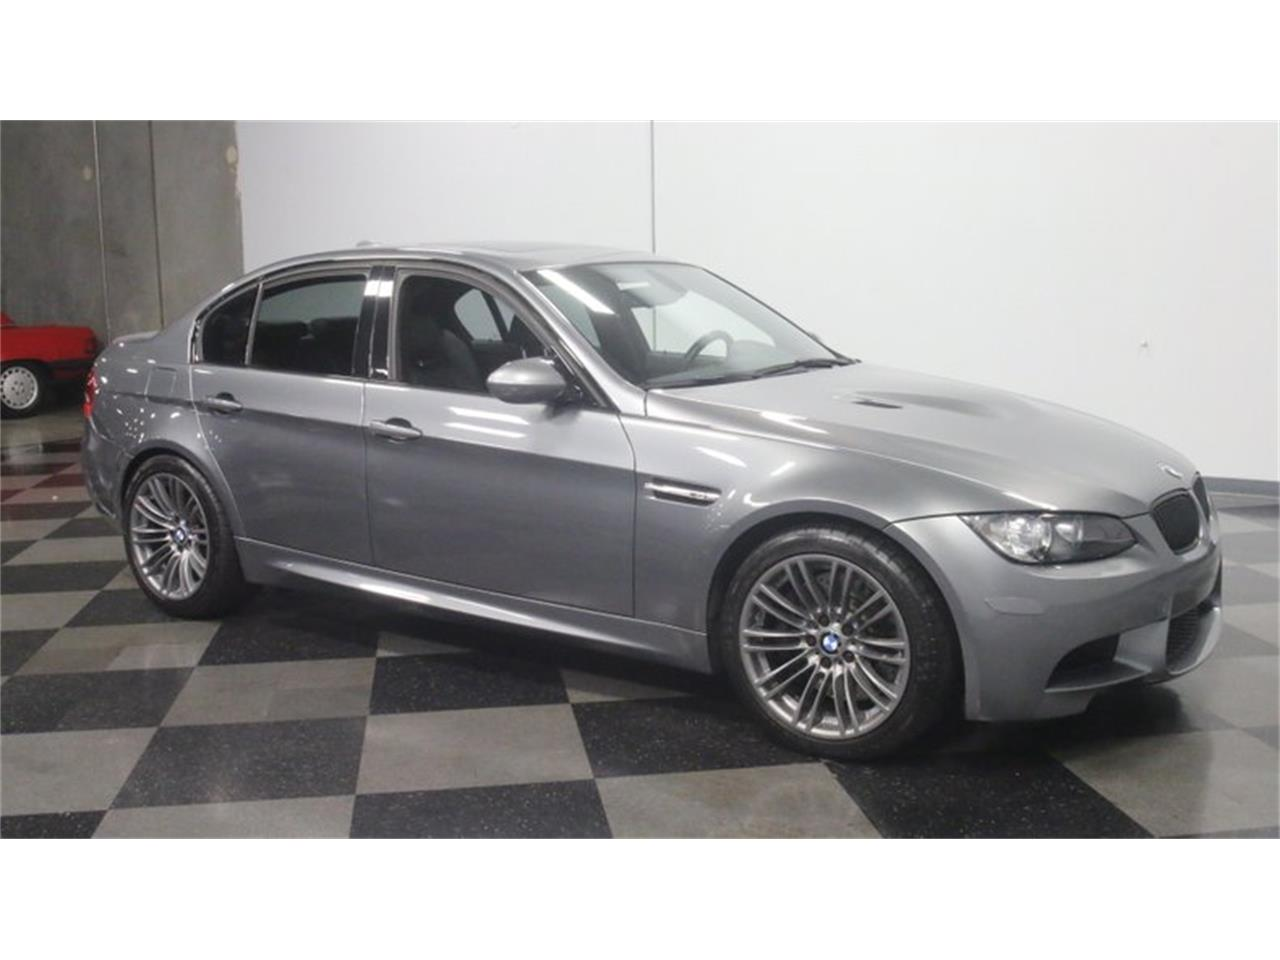 2010 BMW M3 for sale in Lithia Springs, GA – photo 16